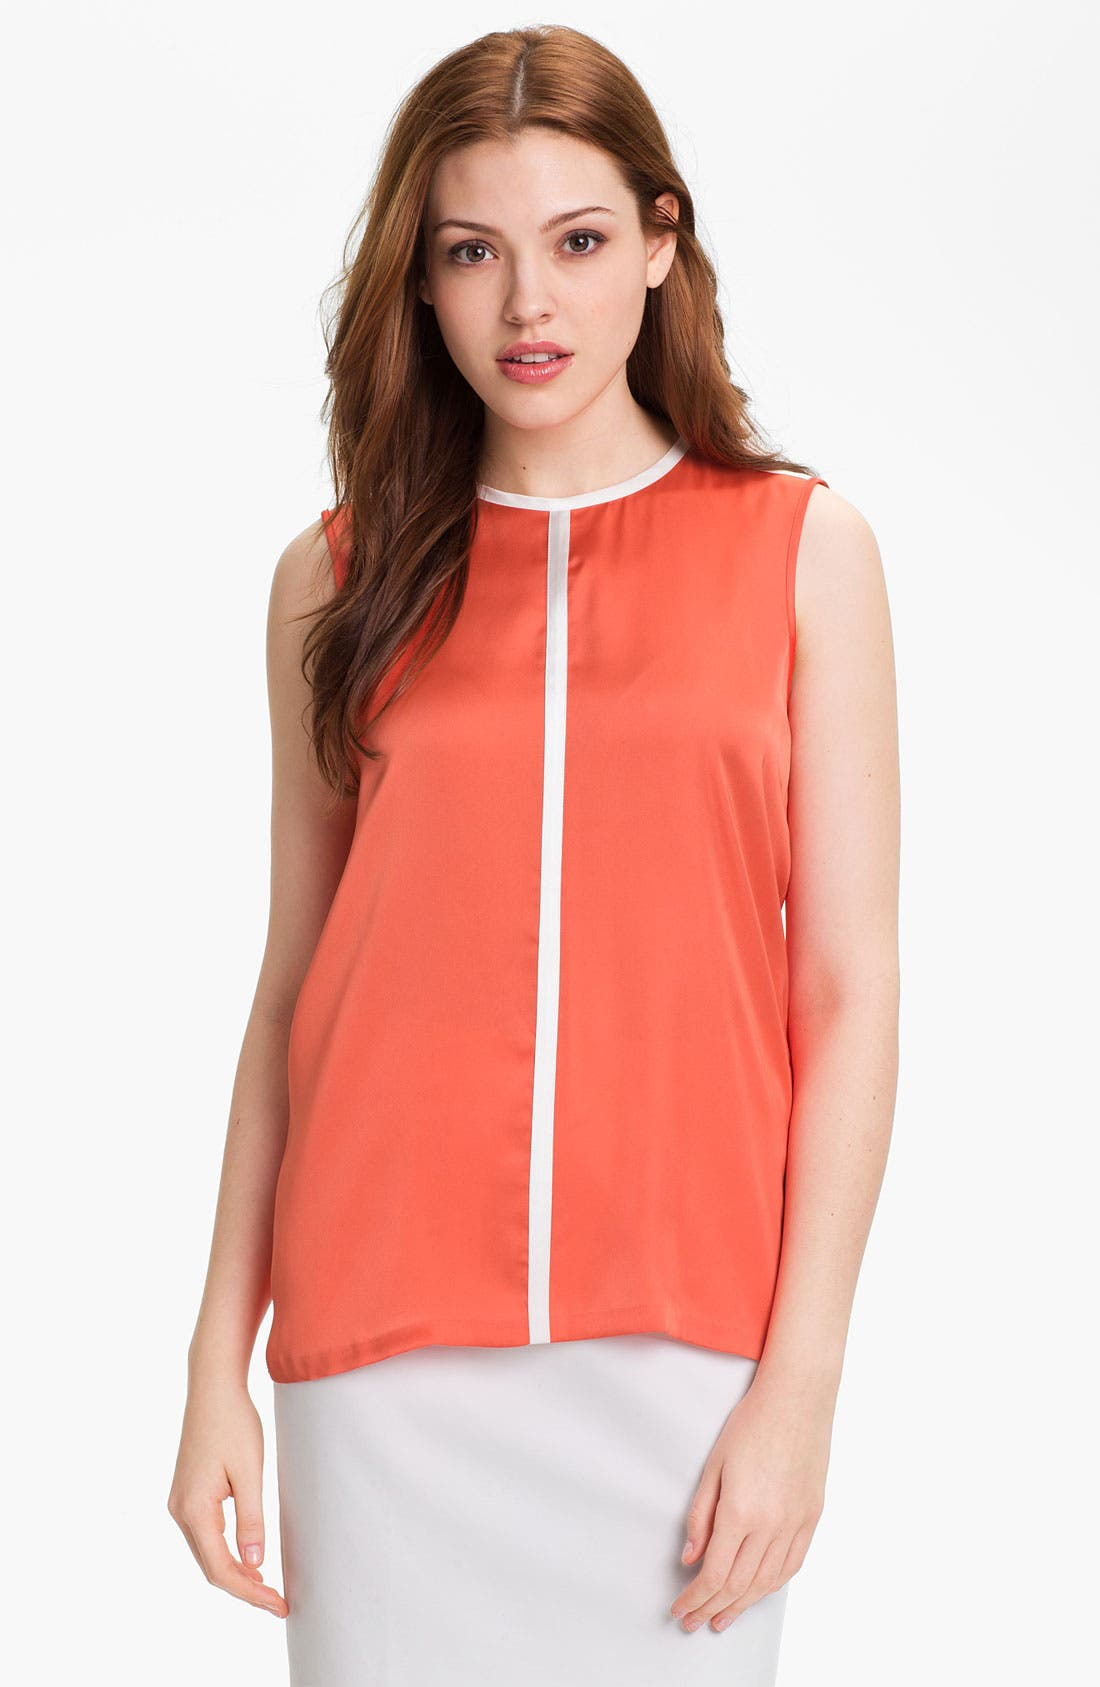 Alternate Image 1 Selected - Vince Camuto Contrast Center Seam Blouse